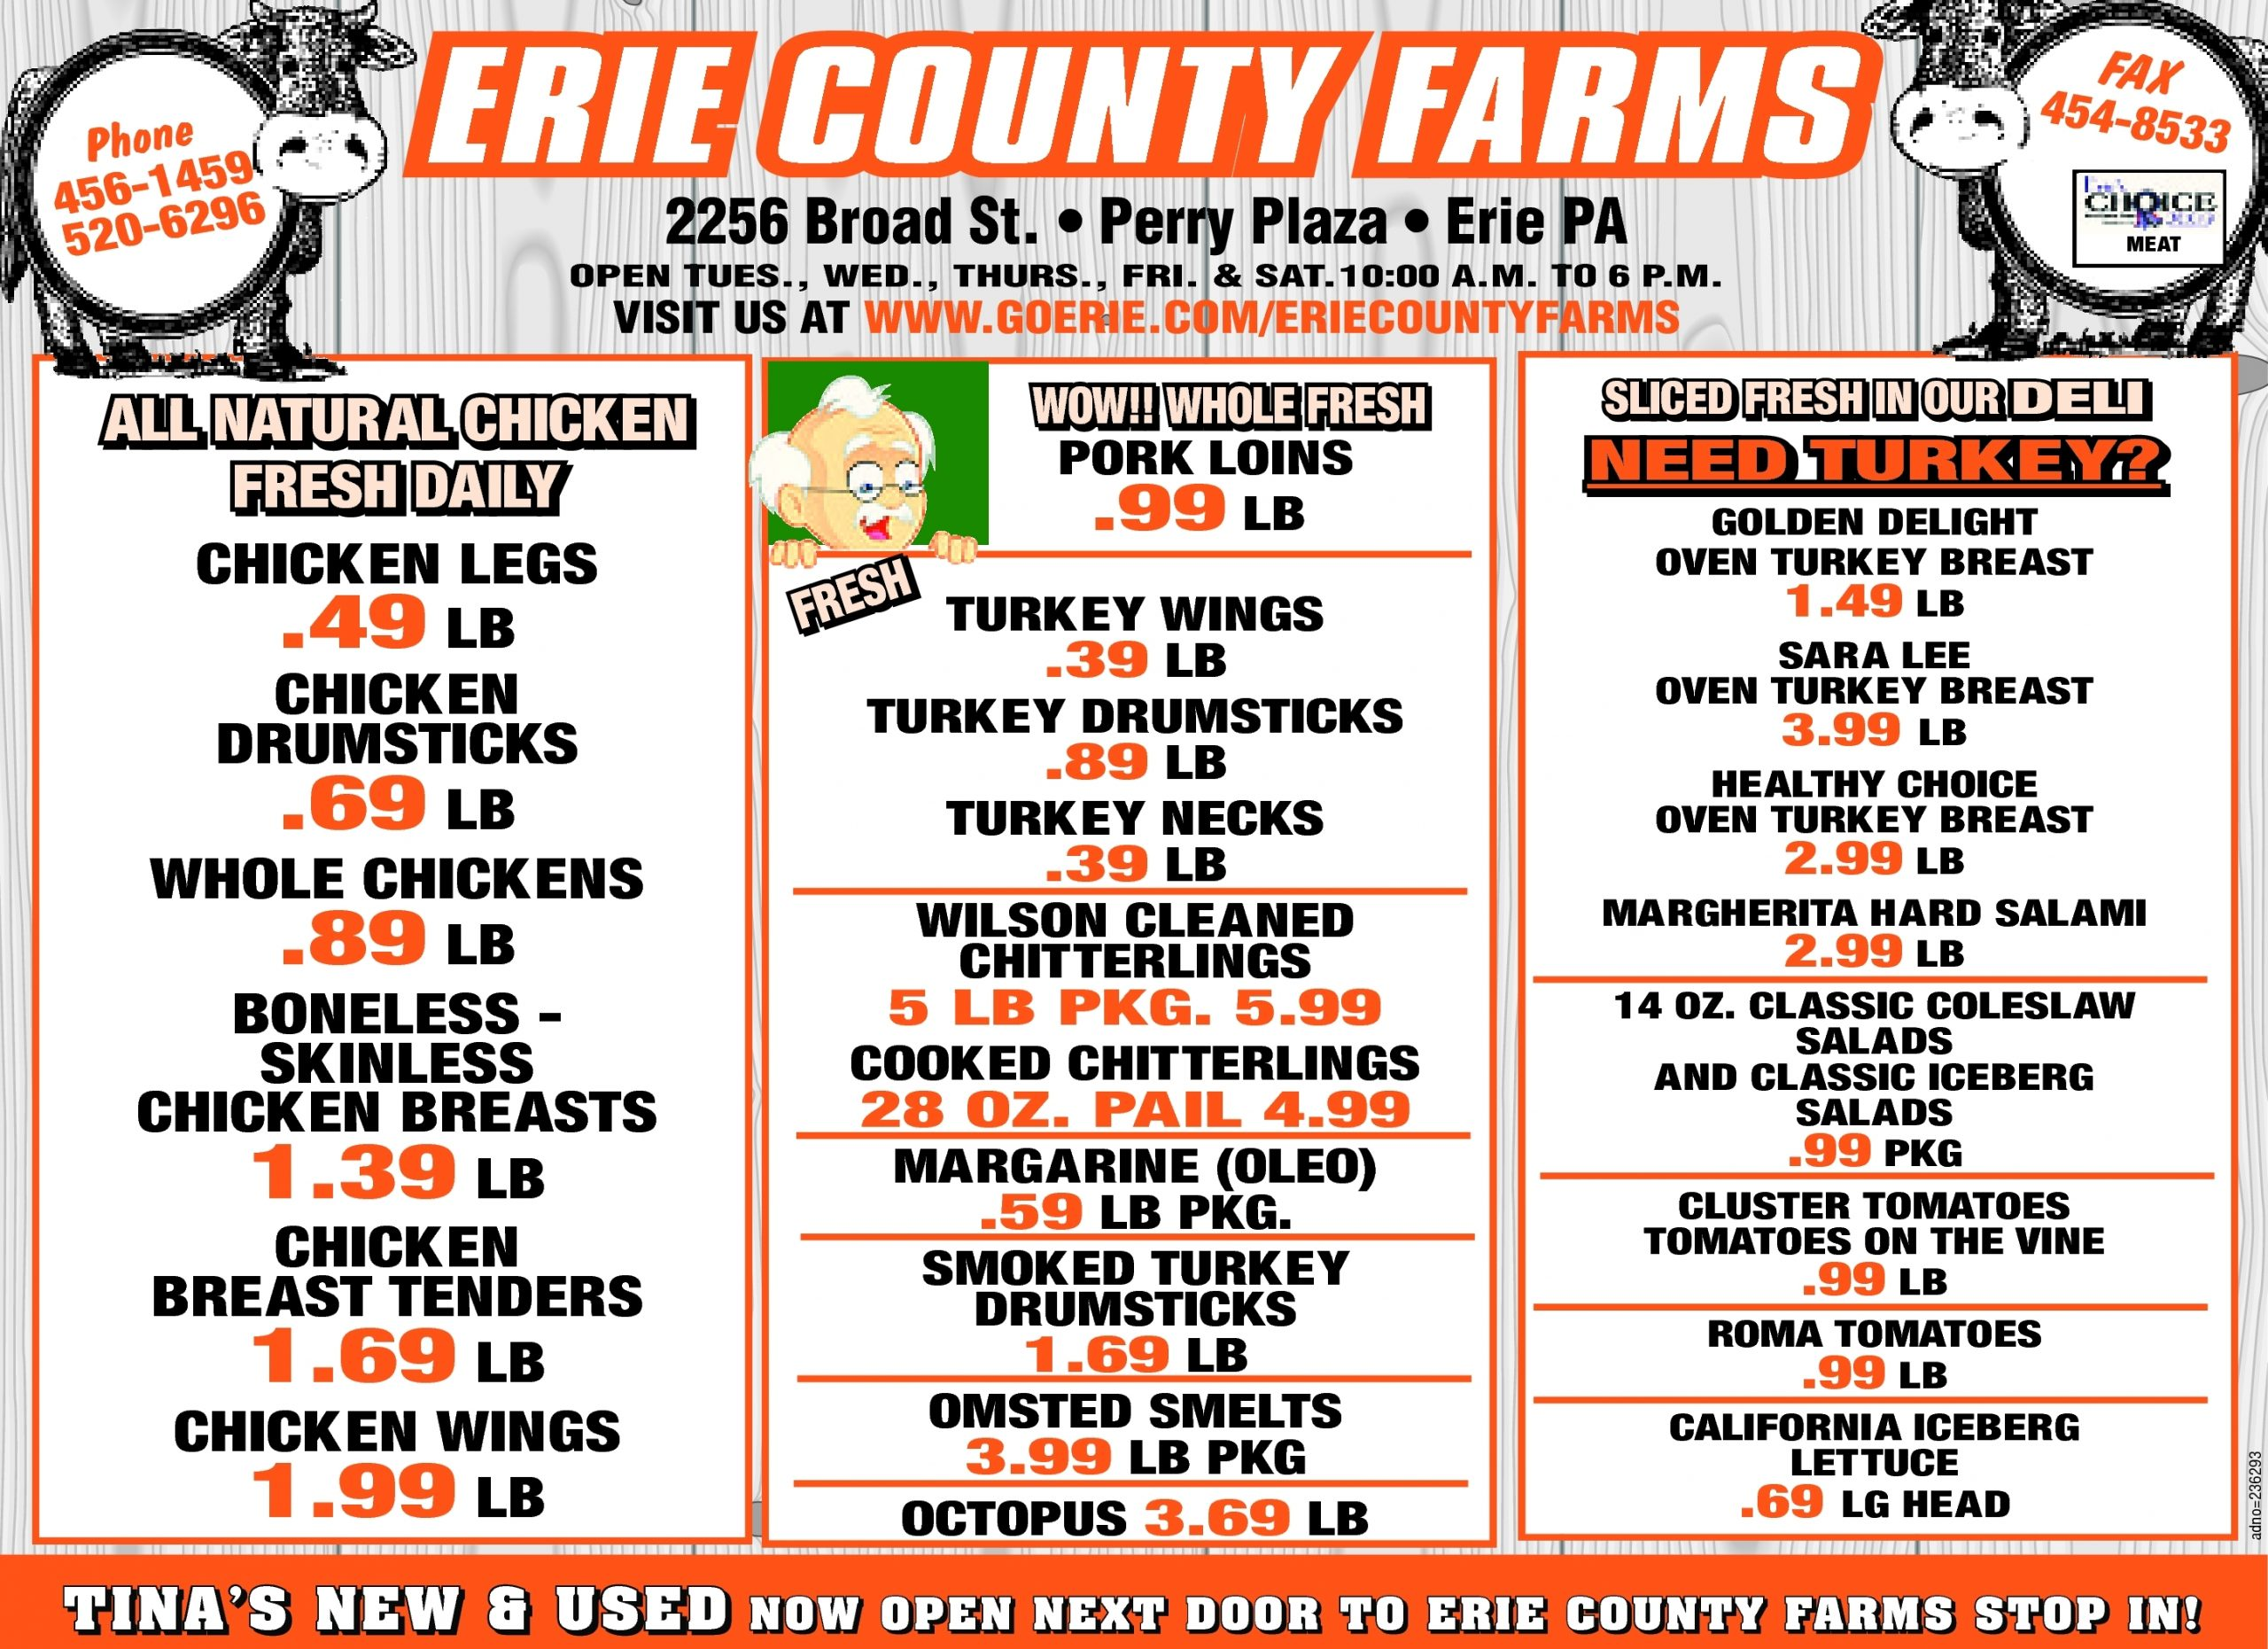 Erie County Farms Weekly Ad December 26, 2016 - January 1, 2017